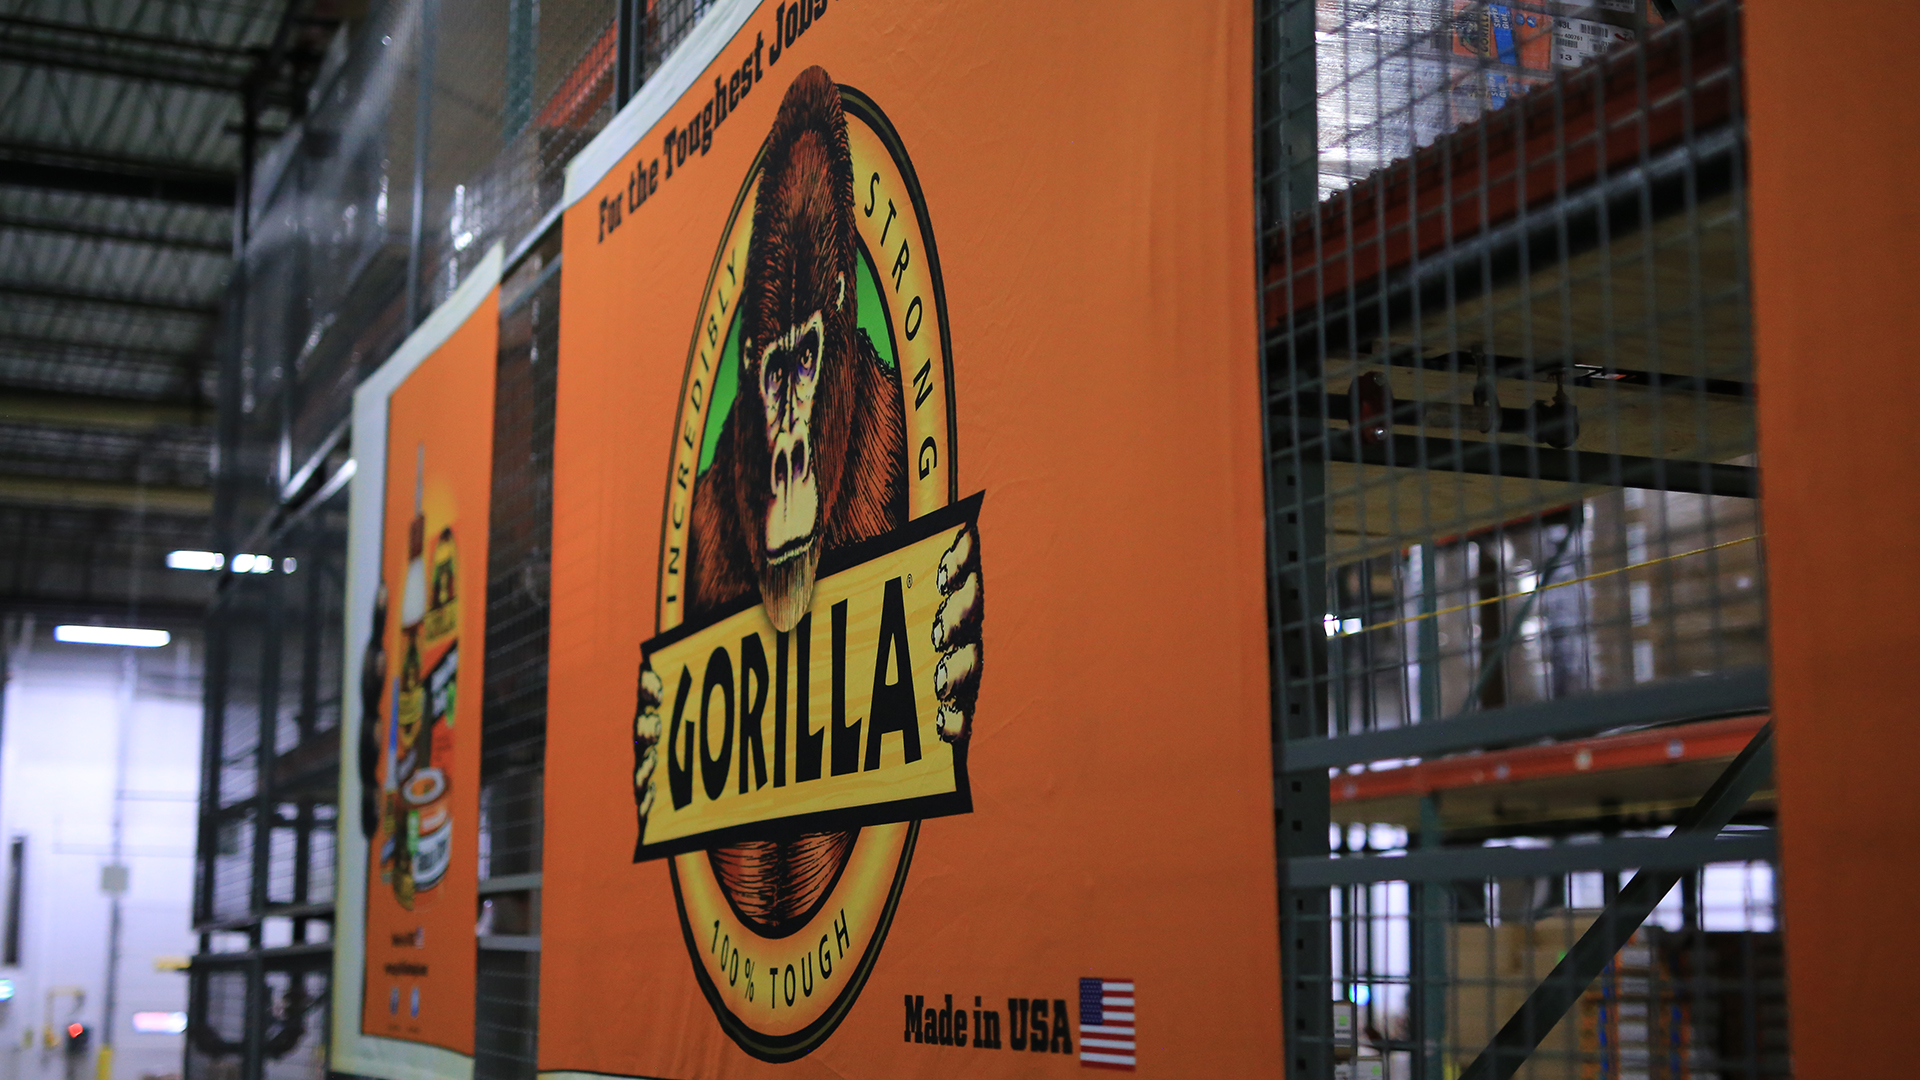 Gorilla glue store production banner image